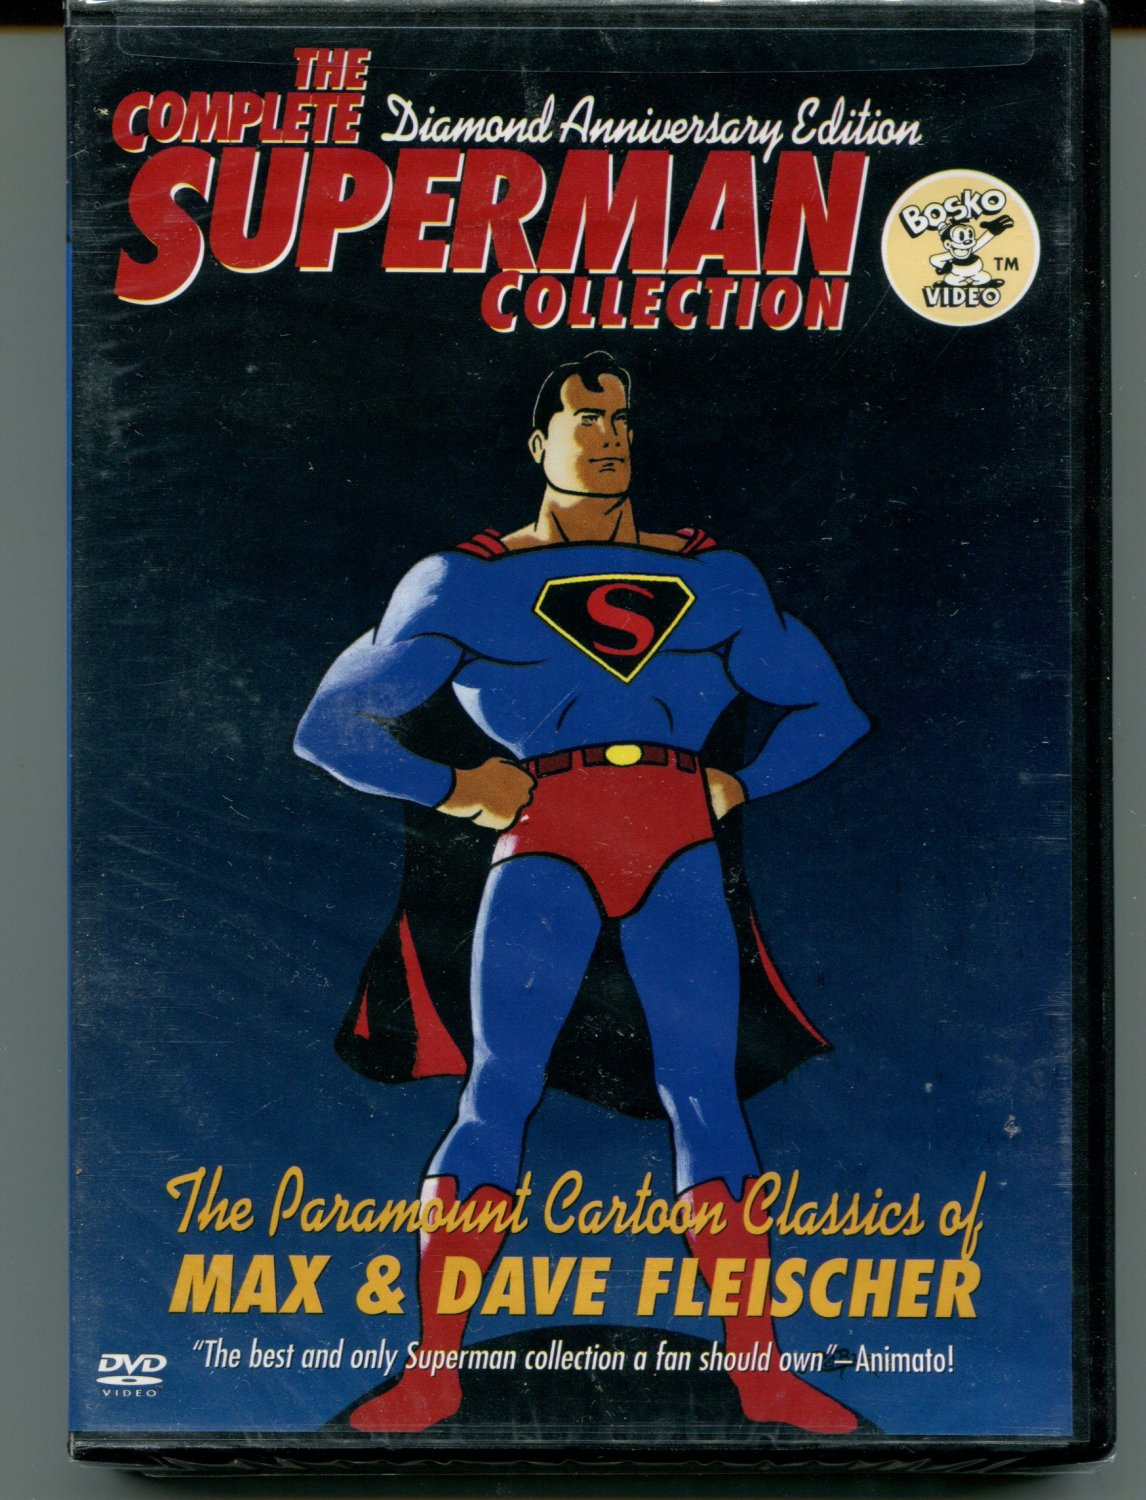 The Complete Superman Collection - Diamond Anniversary Edition (DVD, 2000)